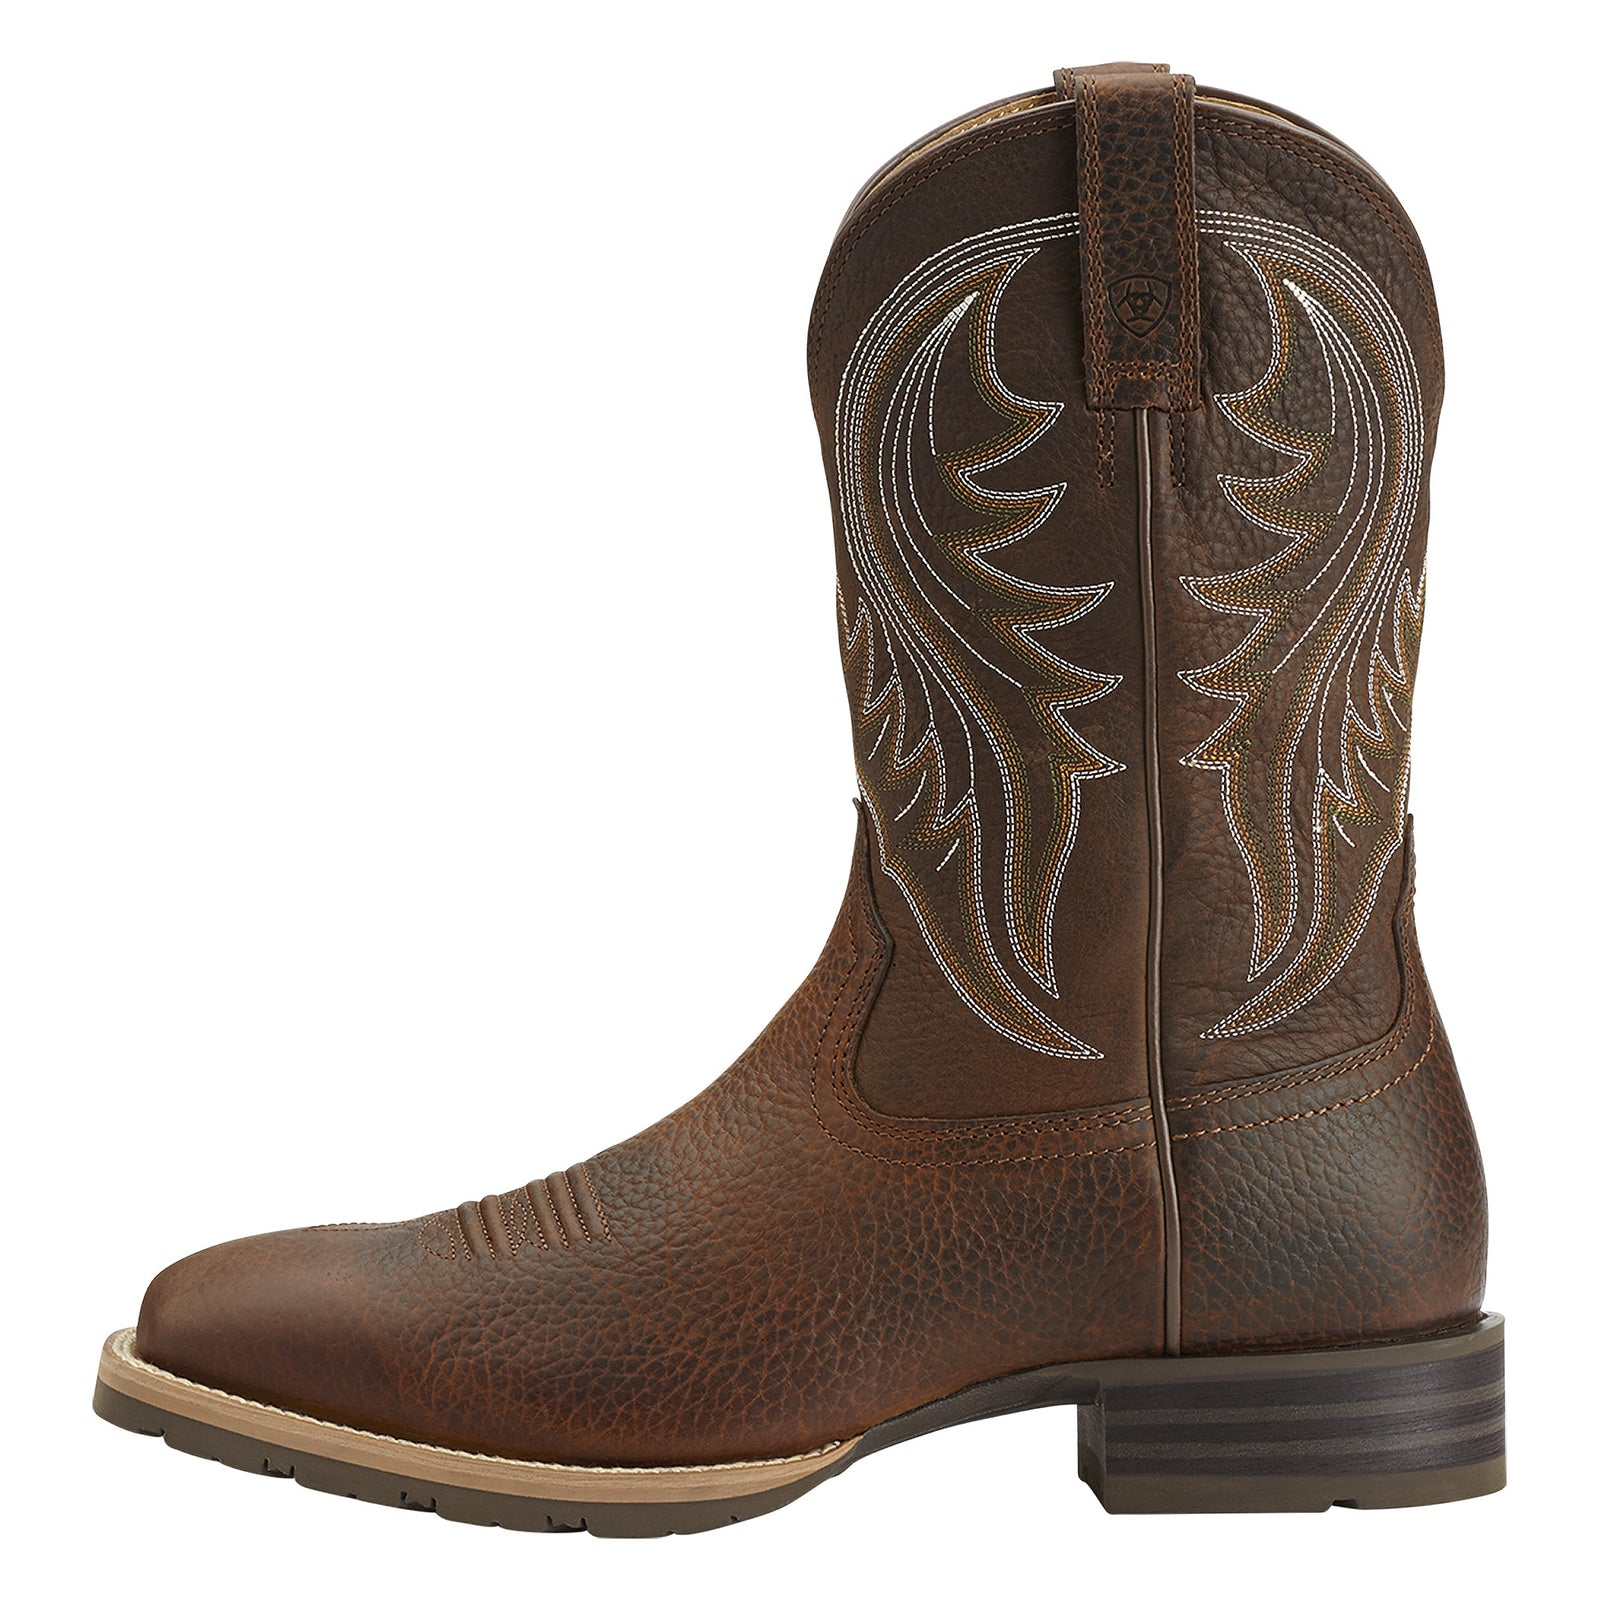 Ariat Men's Hybrid Rancher Square Toe Boot Brown Oiled Rowdy - VaqueroBoots.com - 3